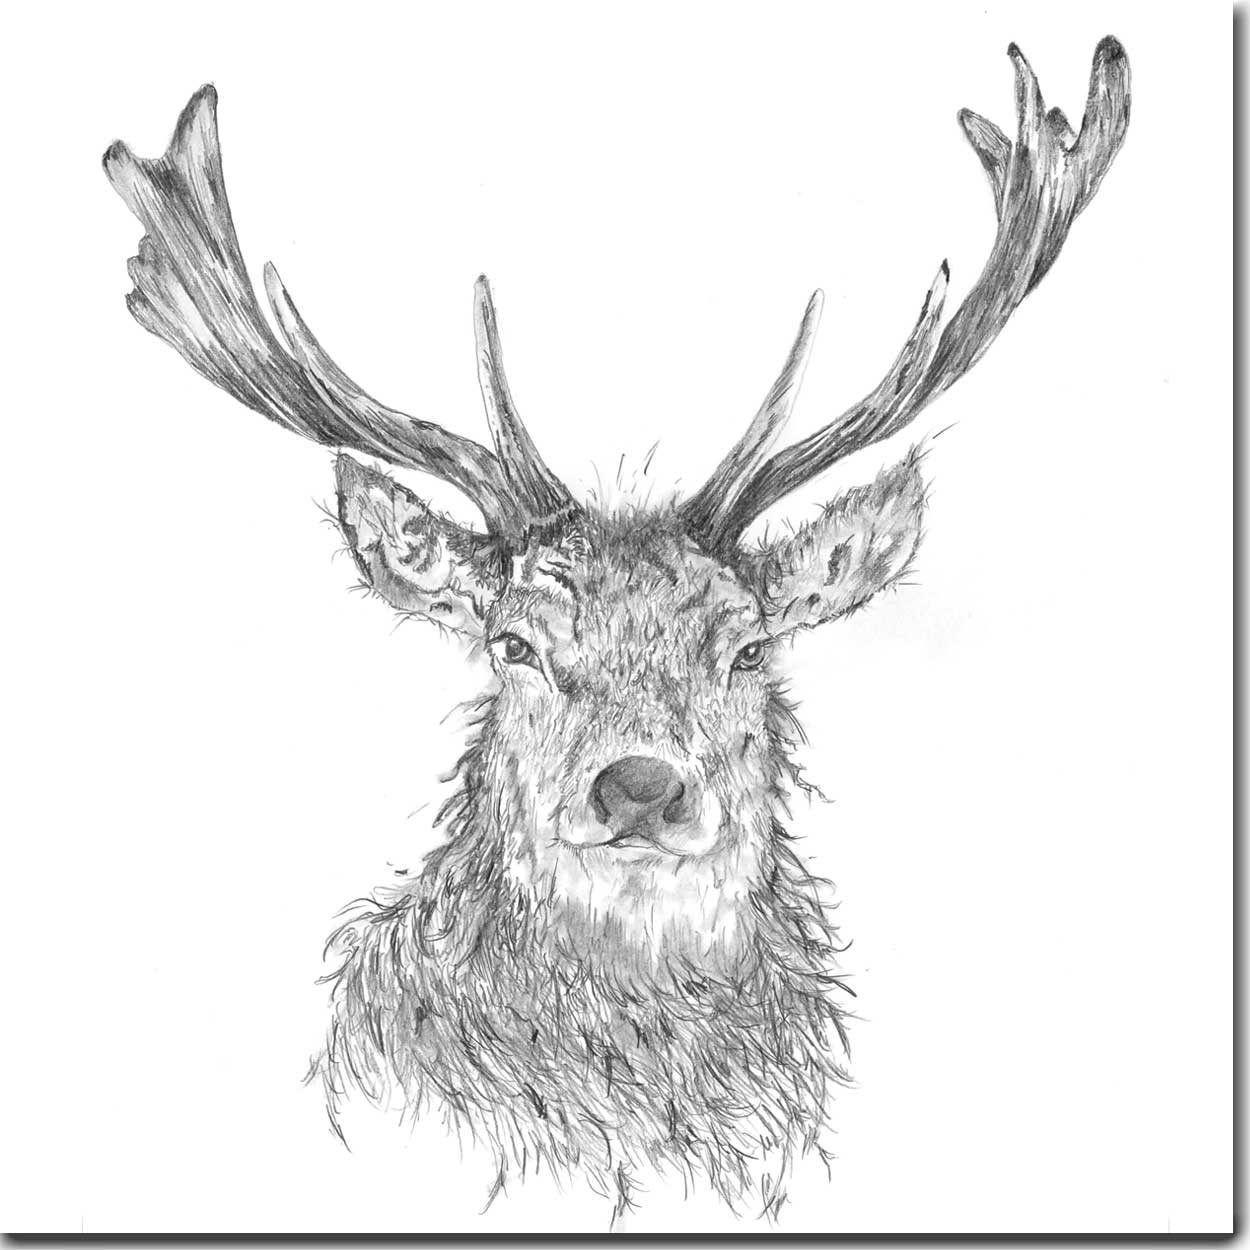 Drawn stag majestic Boddy Card Stag Greeting Stag